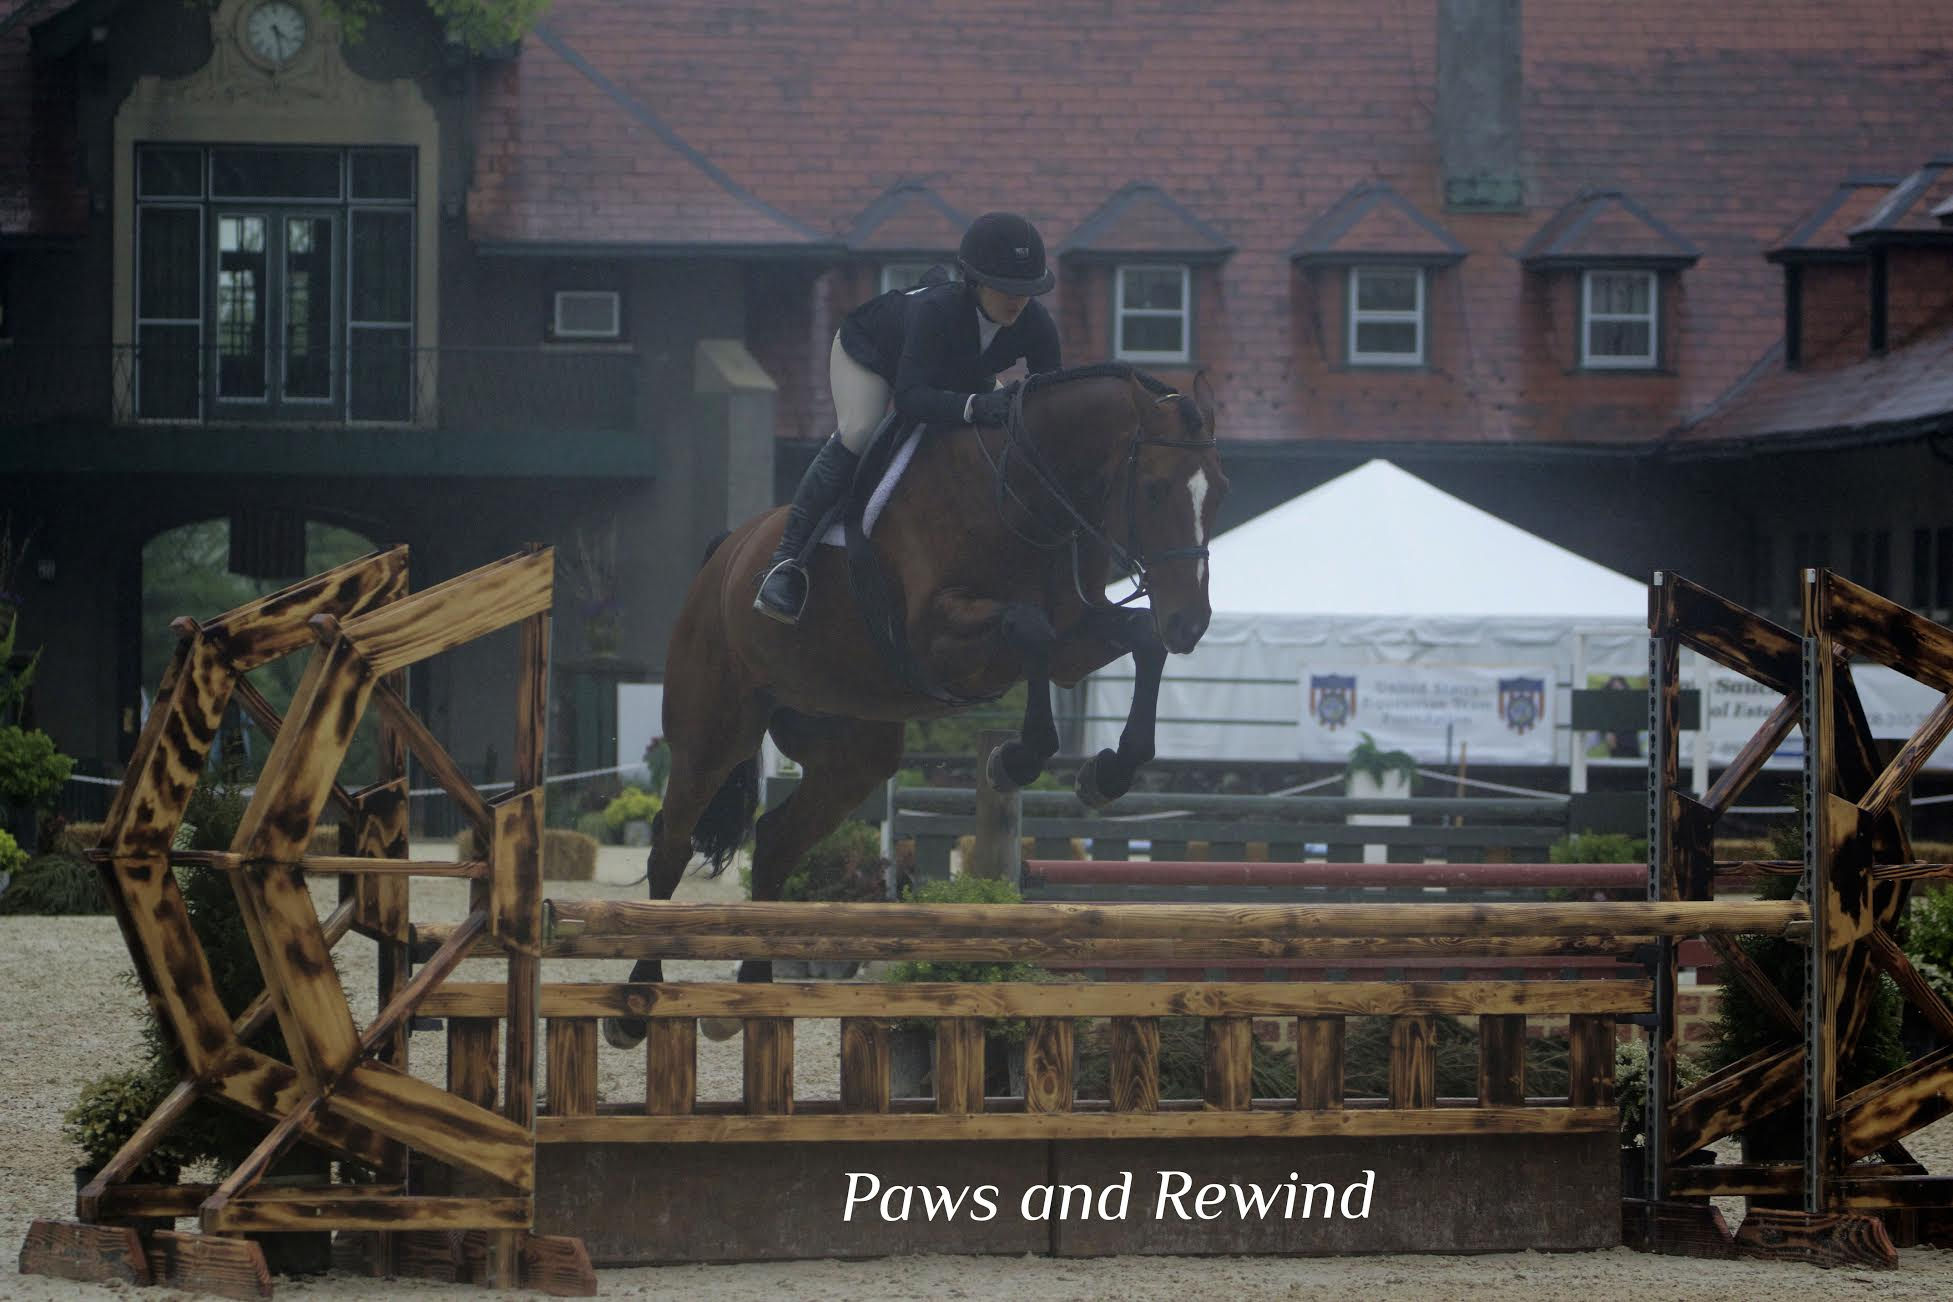 Morgan Munz and Louis. Photo by Paws and Rewind